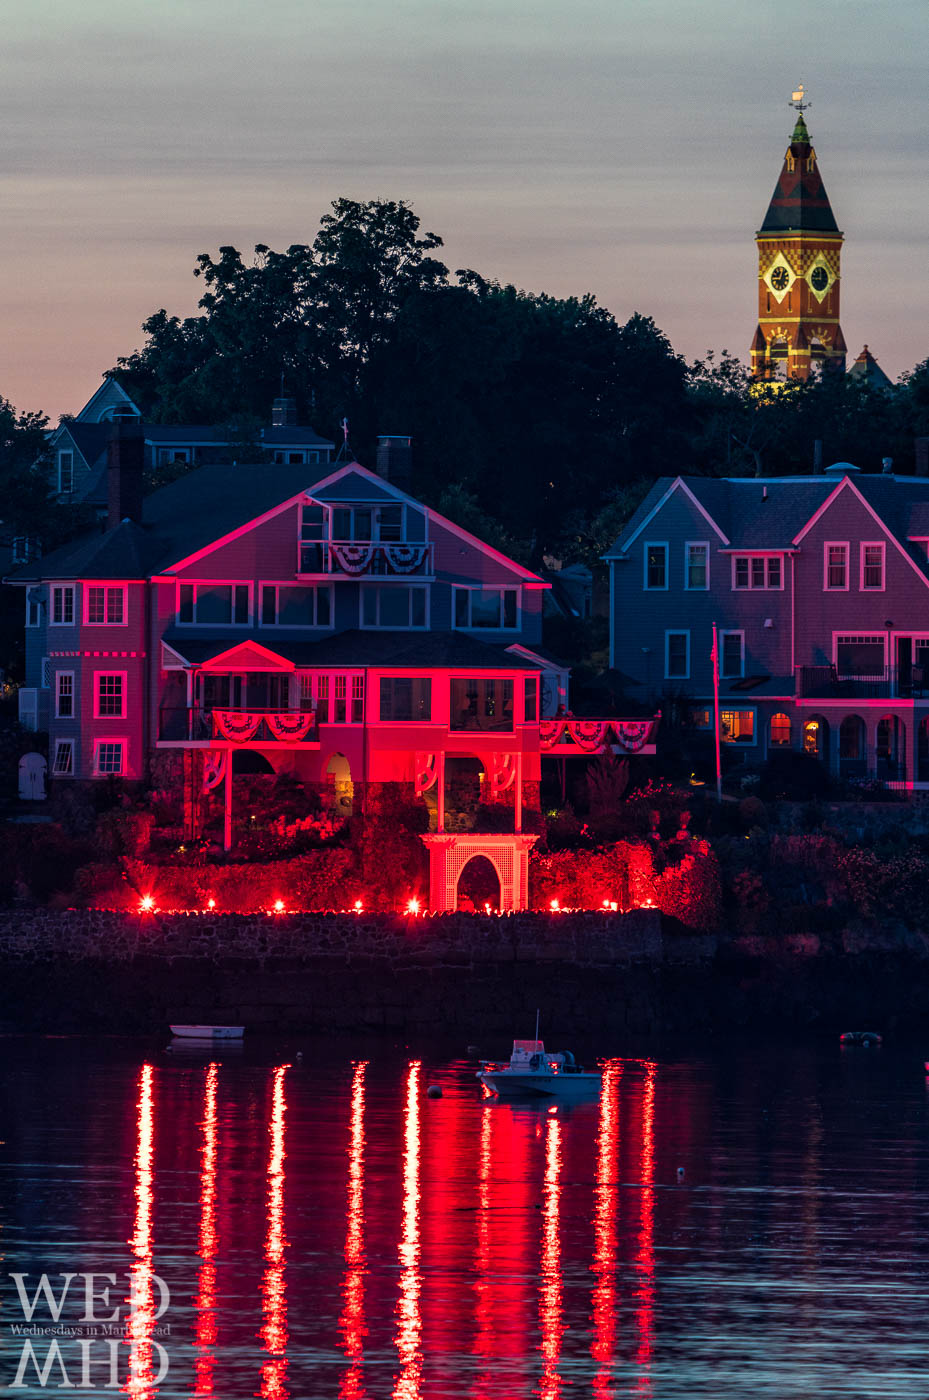 Flare illuminate the whole of Marblehead Harbor on the Fourth of July as in this shot of houses along Cliff Street with Abbot towering over the scene